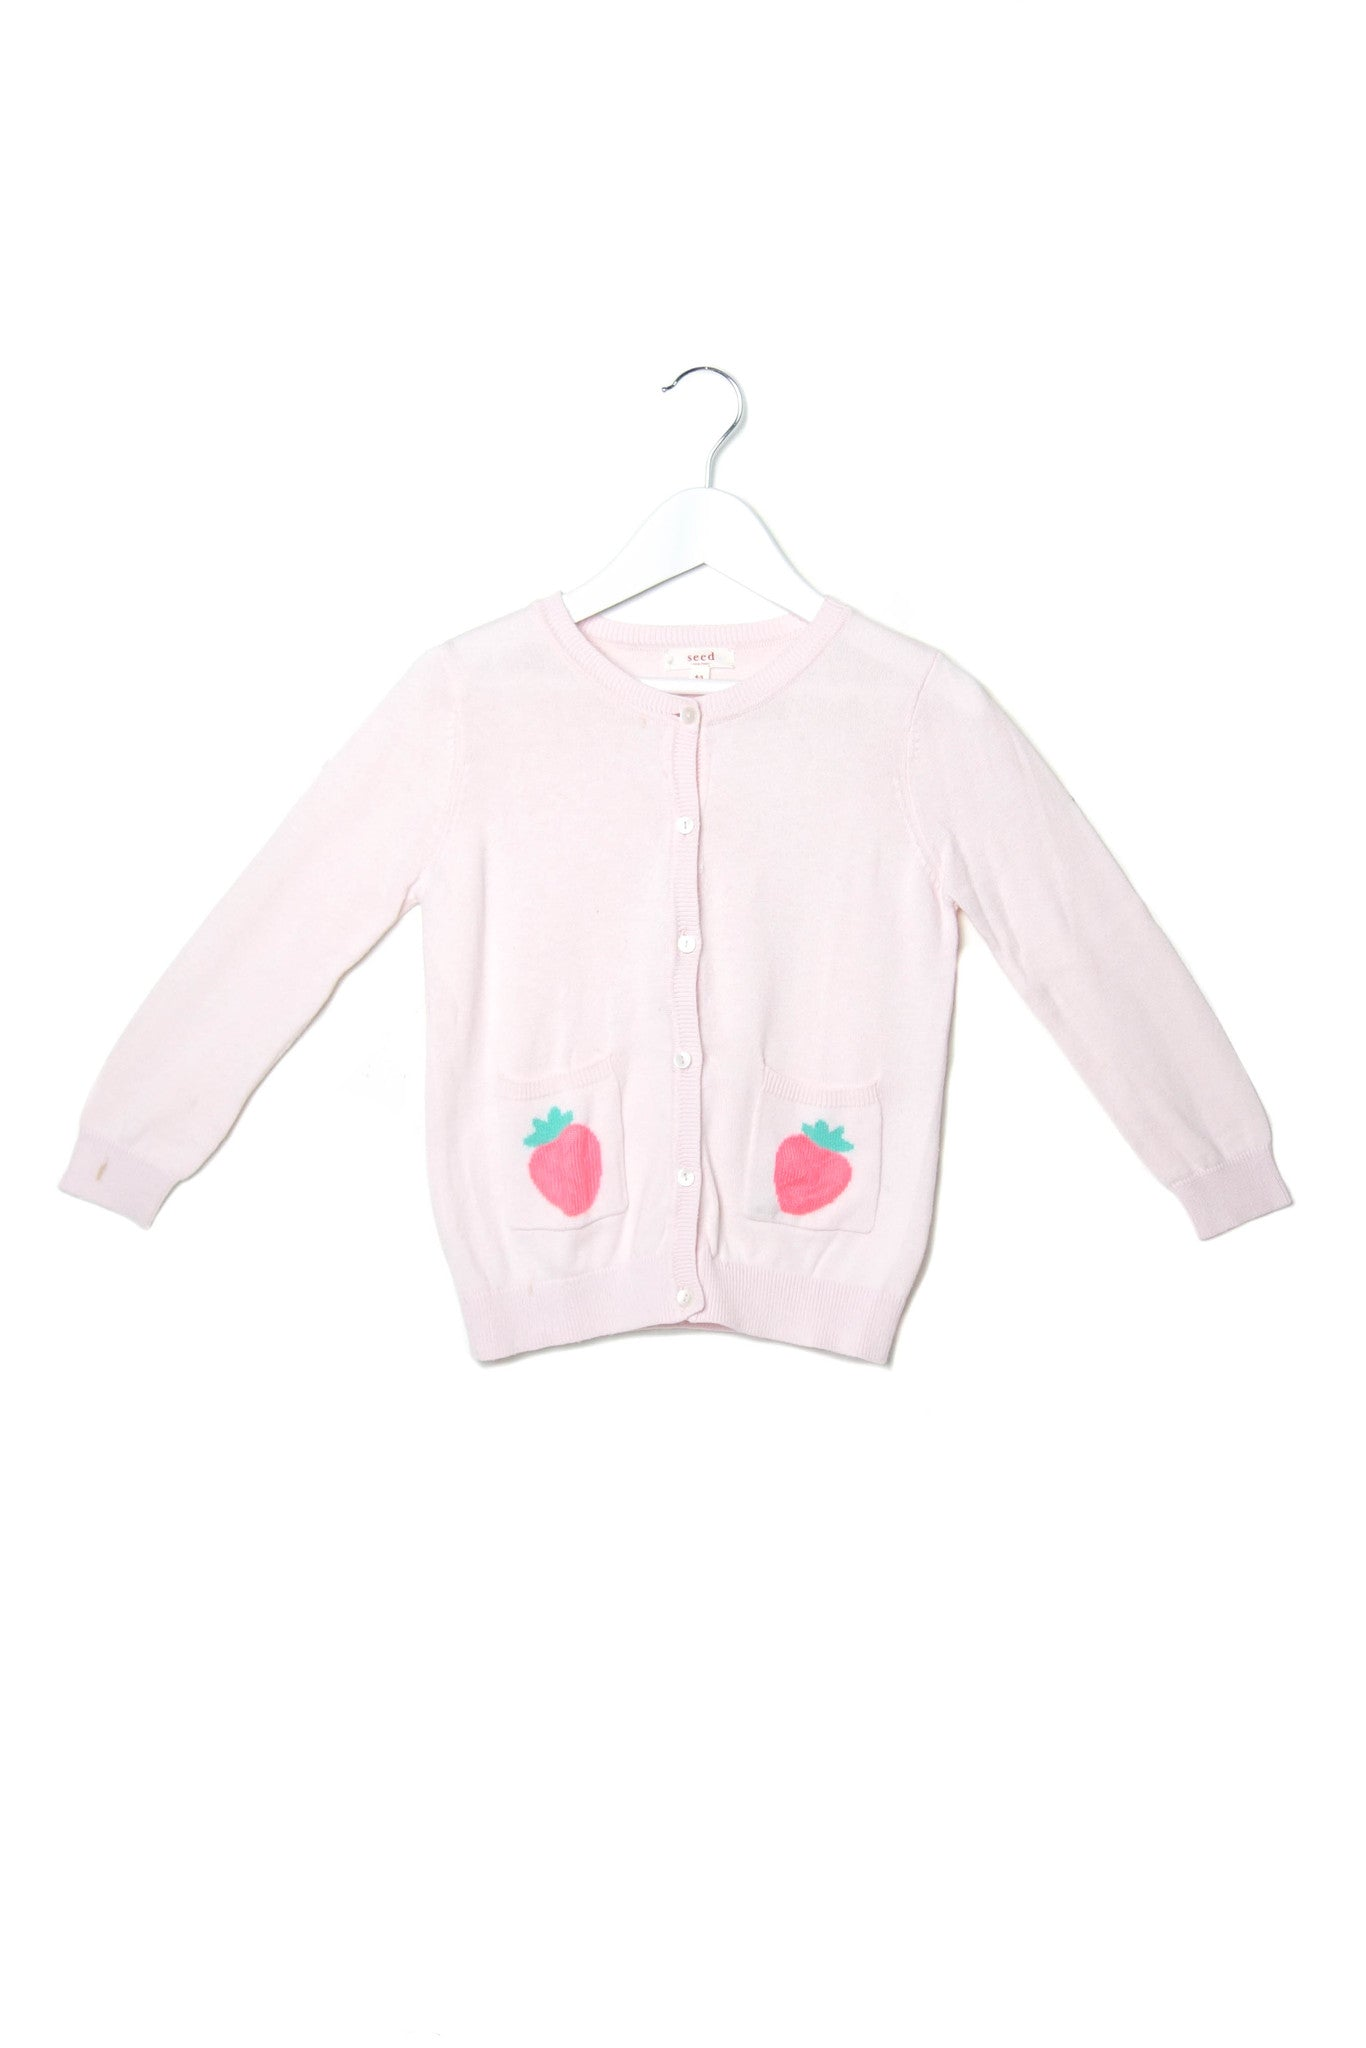 10002170 Seed Kids~Cardigan 4T at Retykle